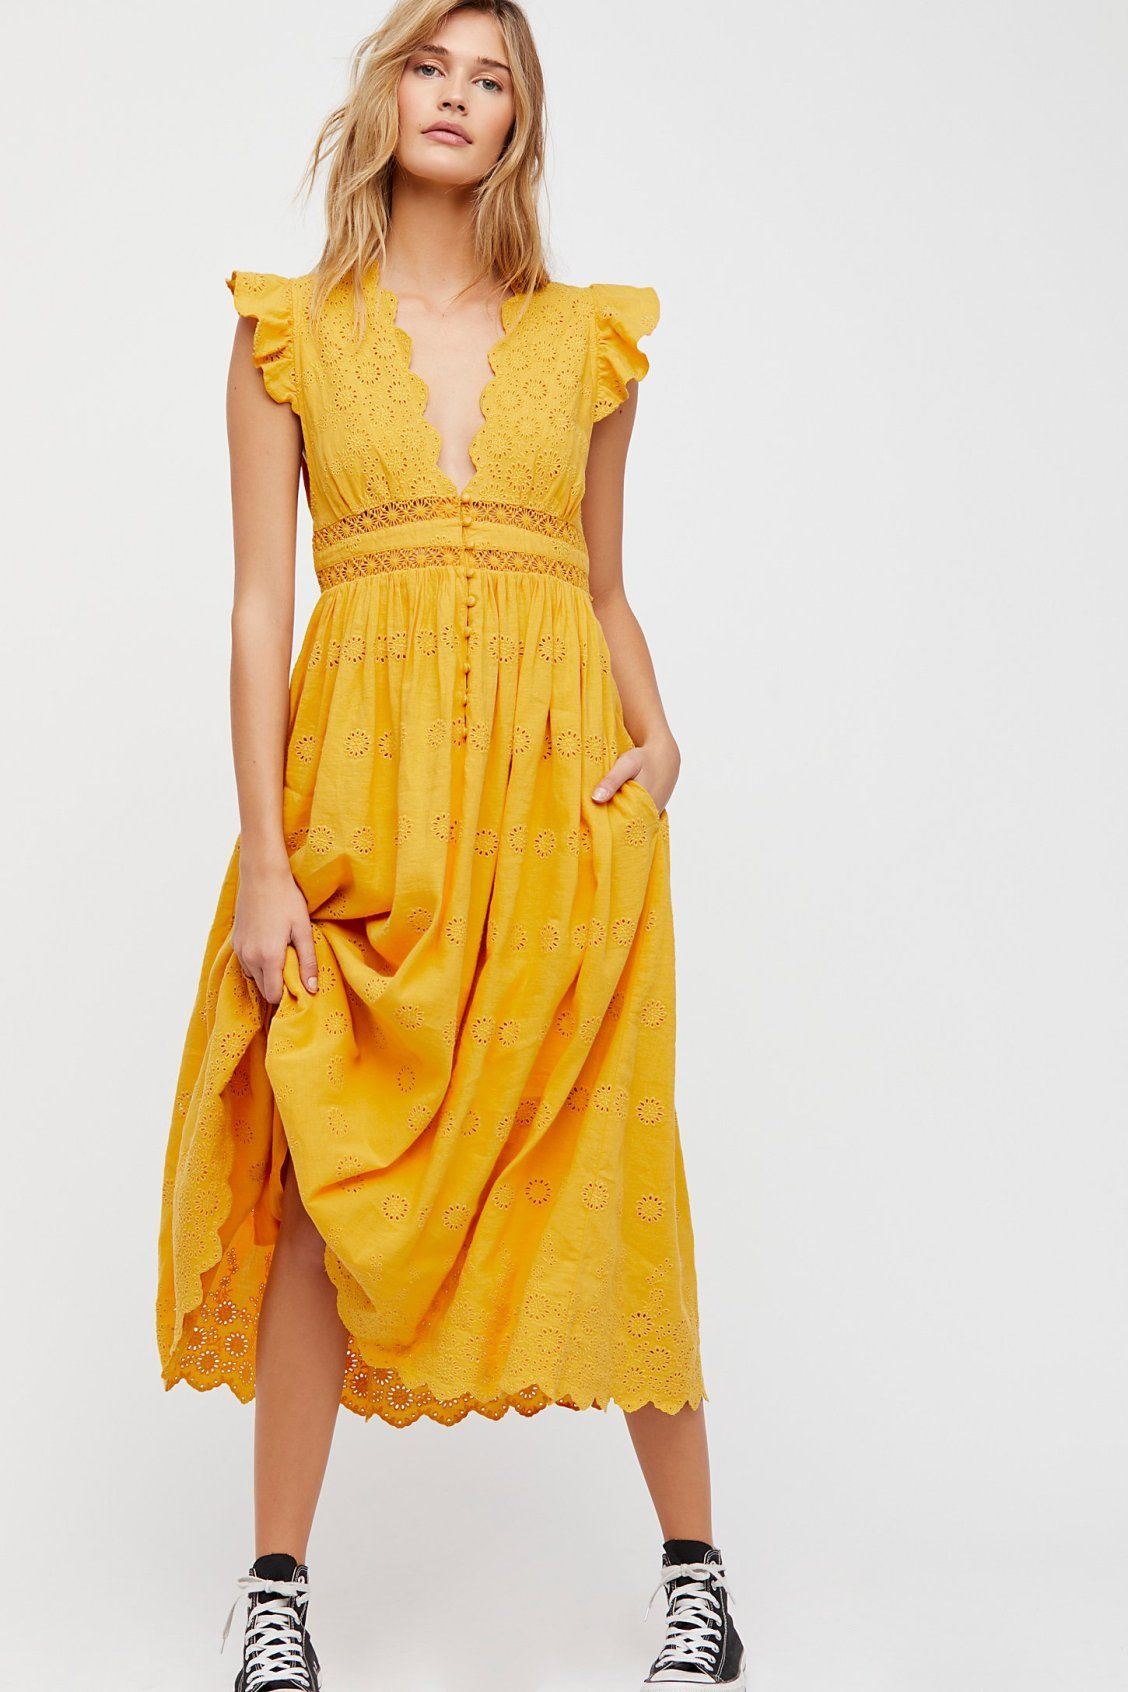 Peach Pie Midi Dress | Free People | The Dress List | Pinterest